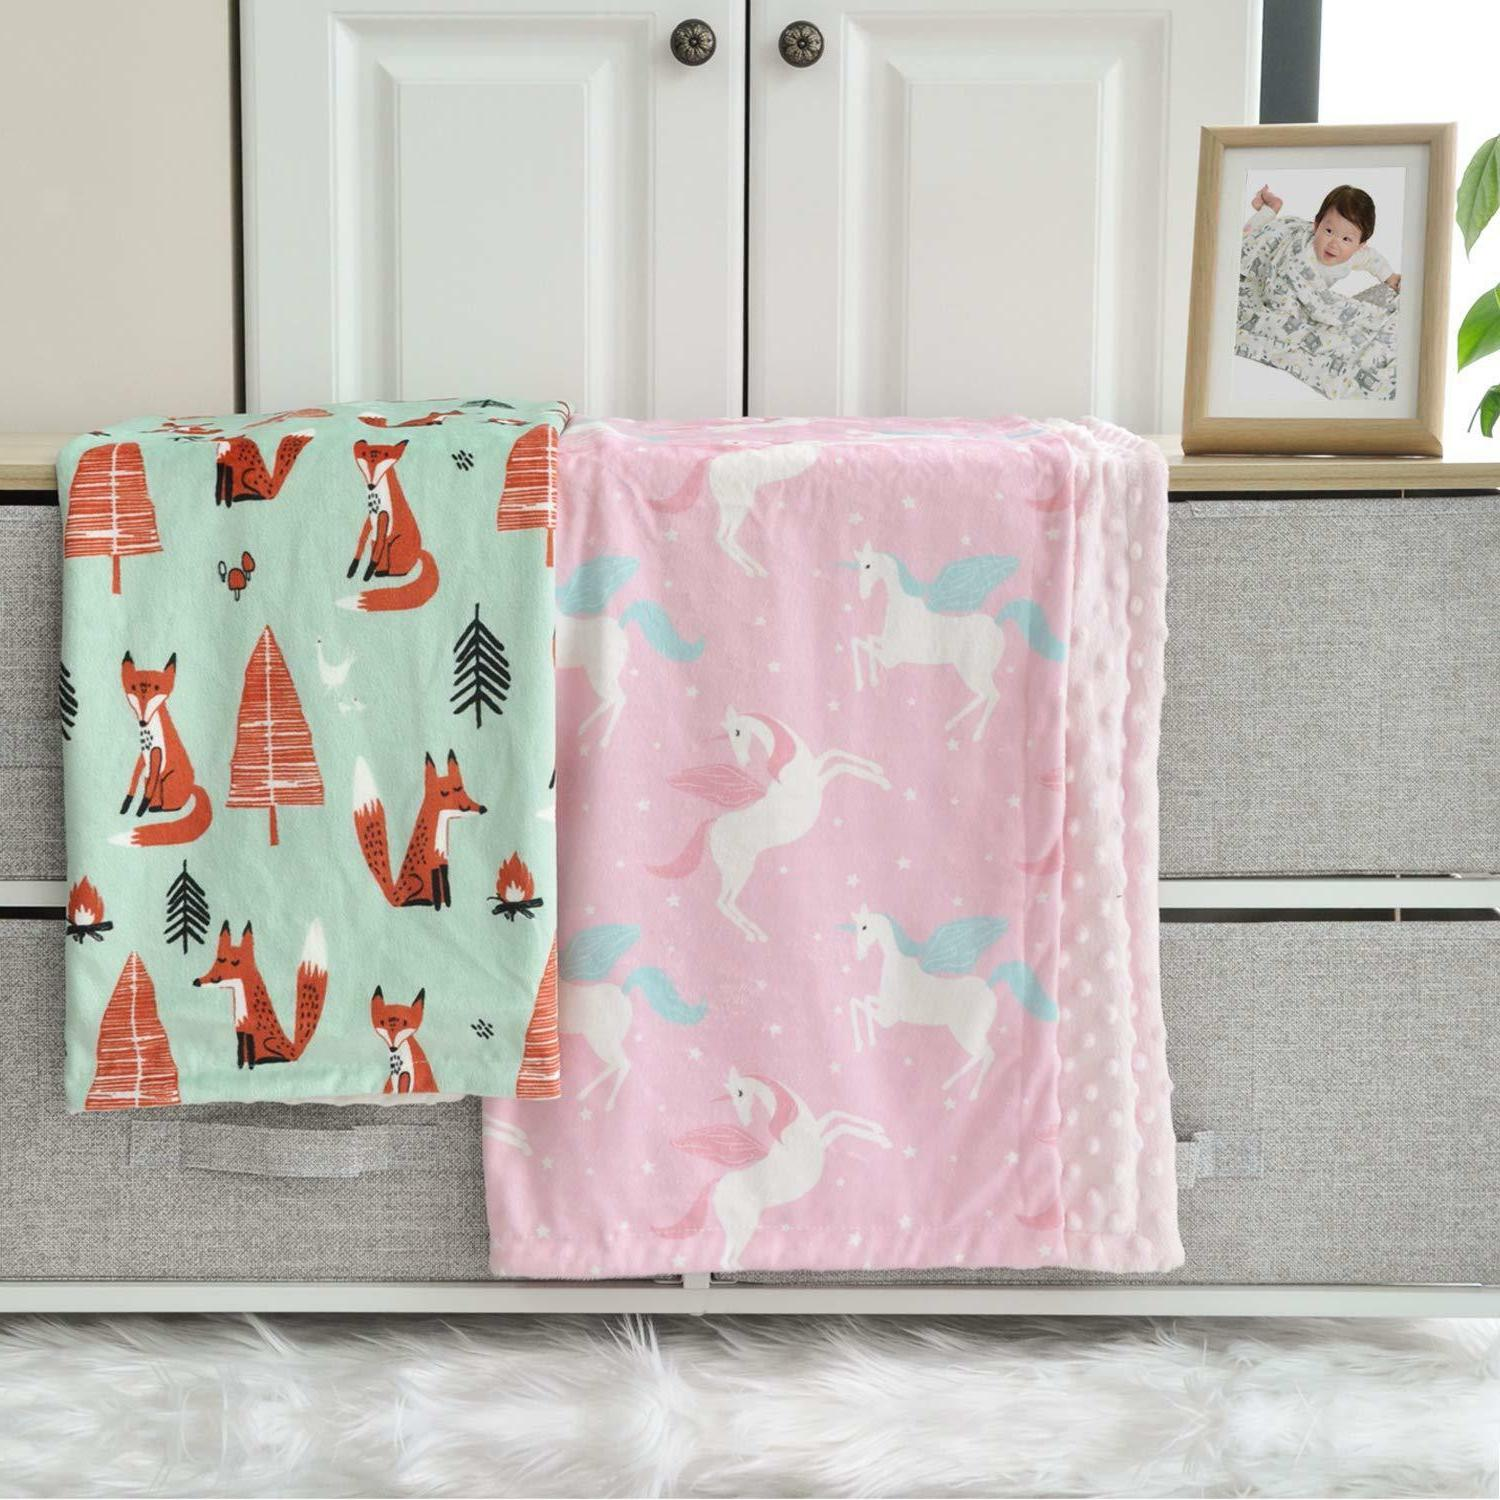 Boritar for Girls with Double 30x40 Pink